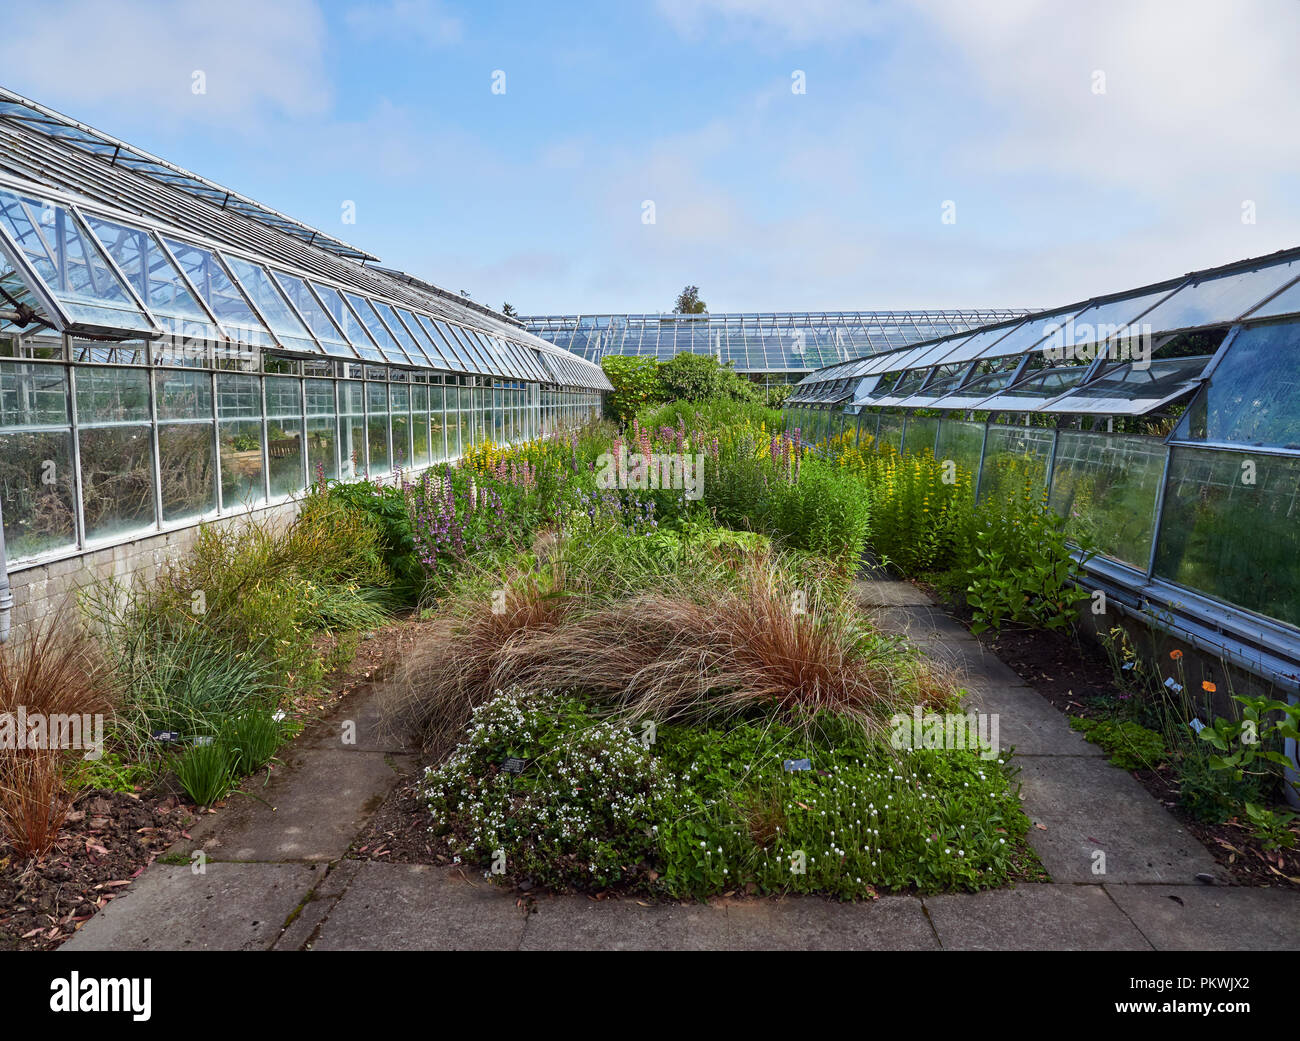 Looking at the Plant Borders between the Rows of Glasshouses at St Andrews, Botanic Garden in Fife in Scotland. - Stock Image